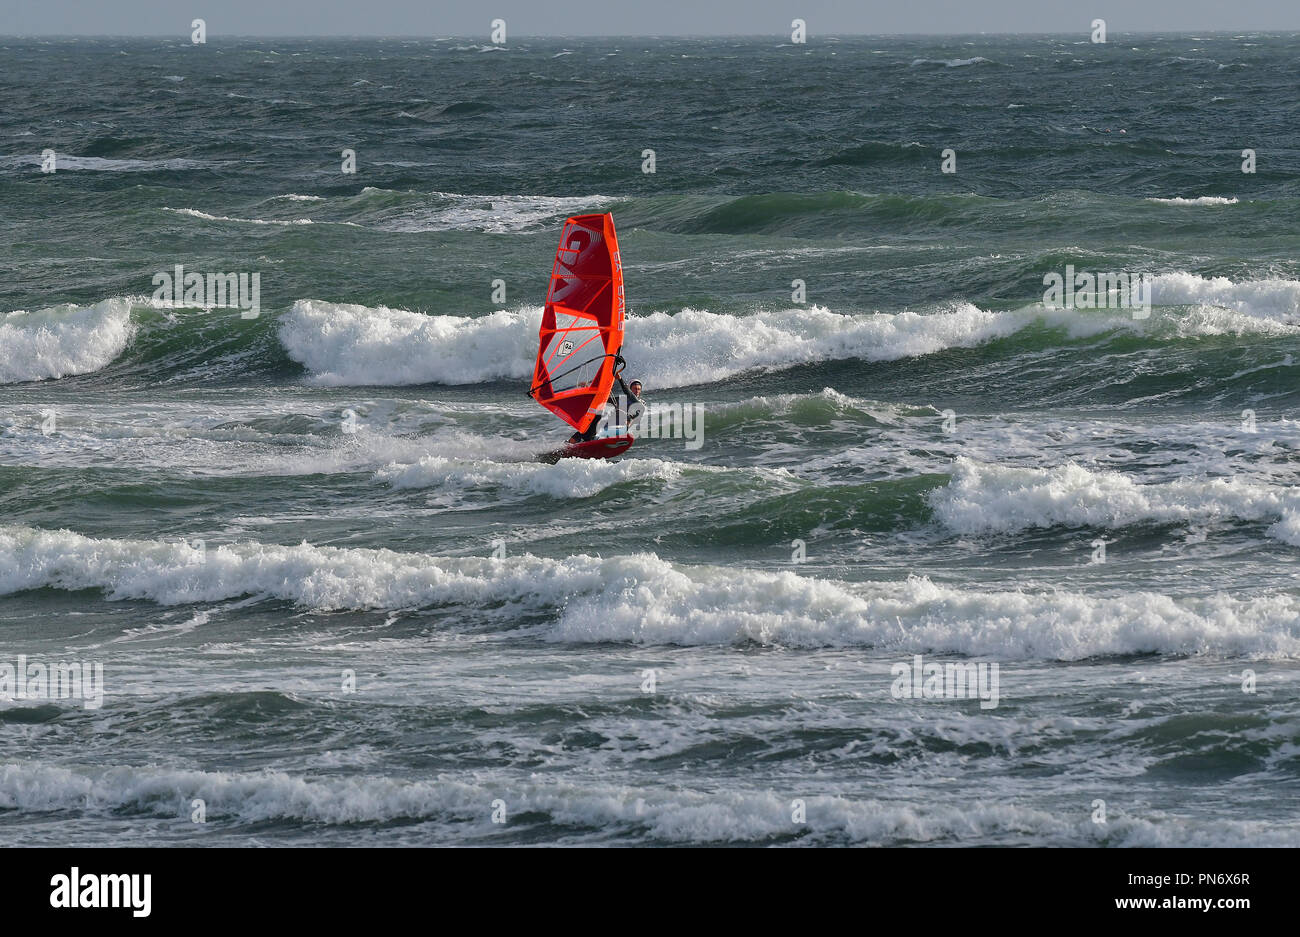 East Wittering, UK. 19th September 2018. Windsurfer(s )brave wild, wet and windy weather  of Storm Ail - our first named storm of the season. Weather was  recorded at the Chichester Bar at 3pm BST  a mean speed of 29 Knots highest gusting  35 .4 Knots The Met Office have issued an yellow weather warning for this area with strong winds and heavy rainfall.Credit Gary Blake / Alamy Live News Stock Photo